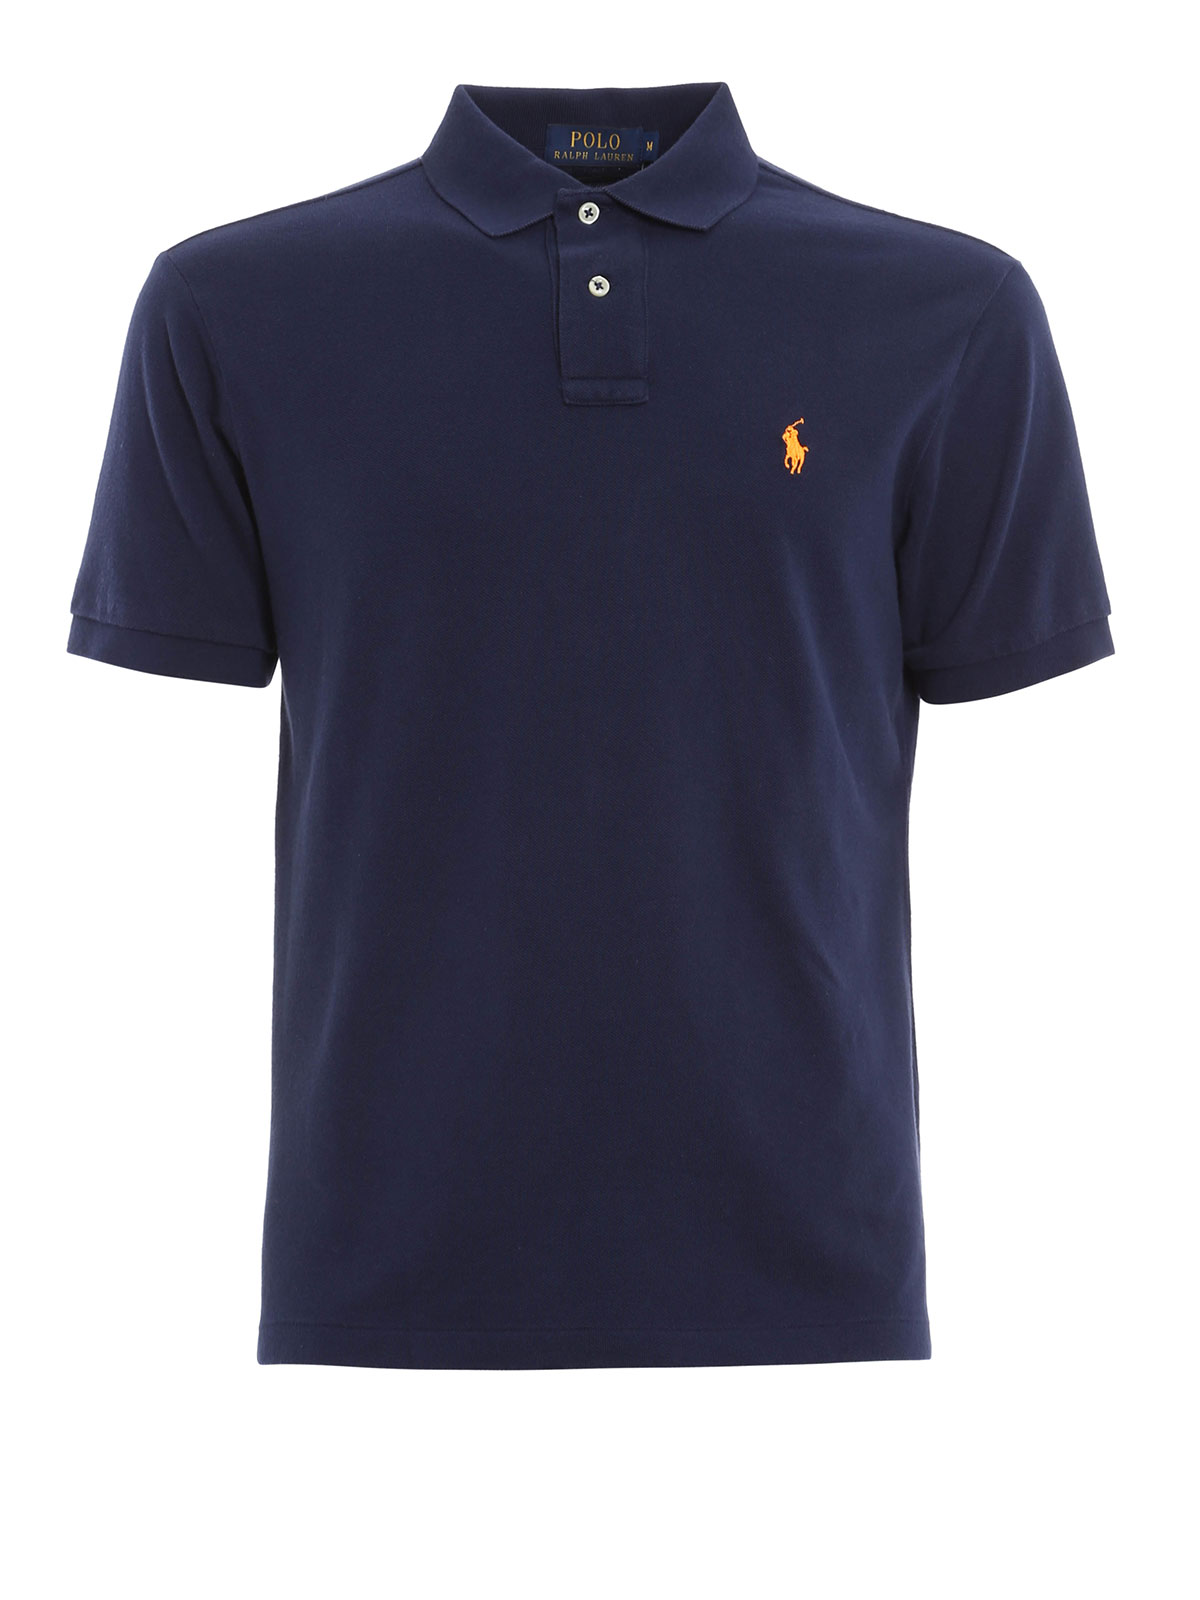 Cotton polo with logo by polo ralph lauren polo shirts for Cotton polo shirts with logo